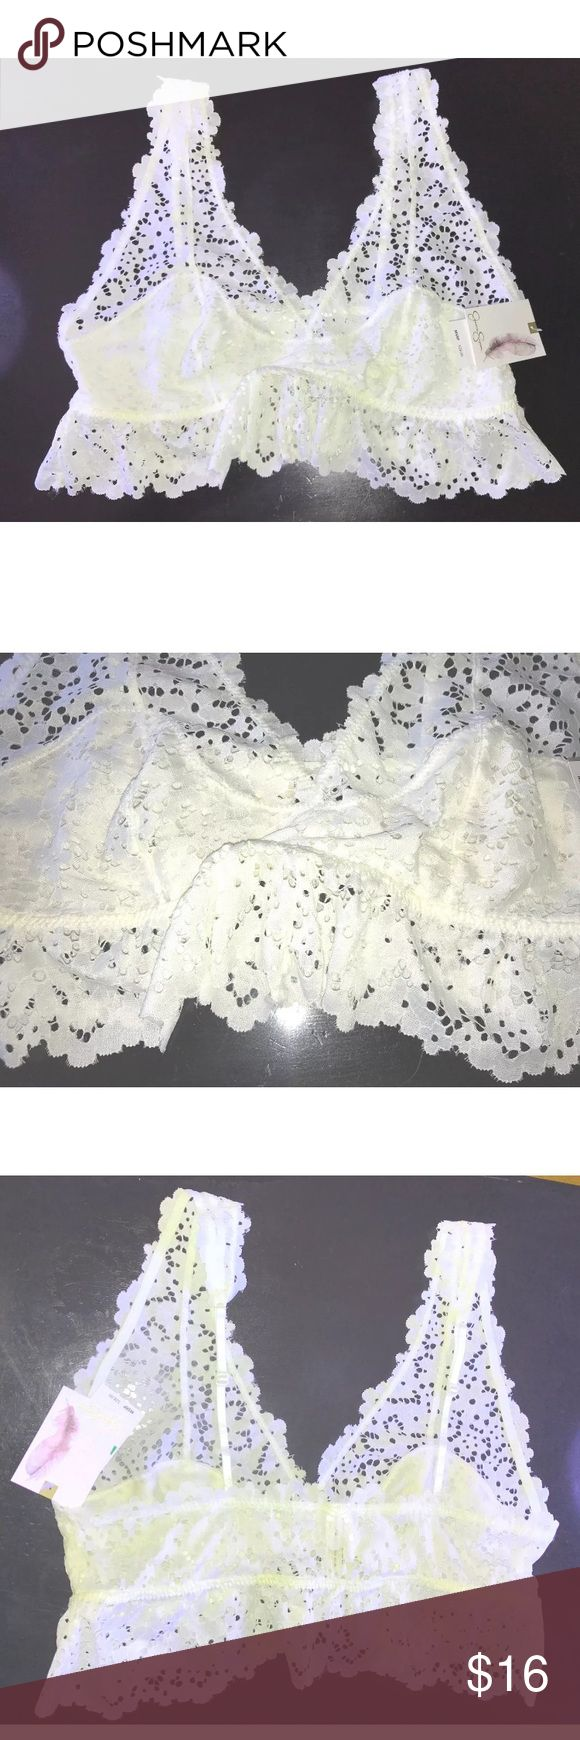 NEW Ivory Eyelet Ruffle Bralette NEW Jessica Simpson Ivory Eyelet Ruffle Triangle Bralette SIZE Large MSRP on tag is $28  Open eyelet fabric, the actual cup area is lined  Pull on style  Unpadded  Adjustable skinny shoulder straps  Size Large  88% Nylon. 12% Spandex  Thank you so much! Jessica Simpson Intimates & Sleepwear Bras